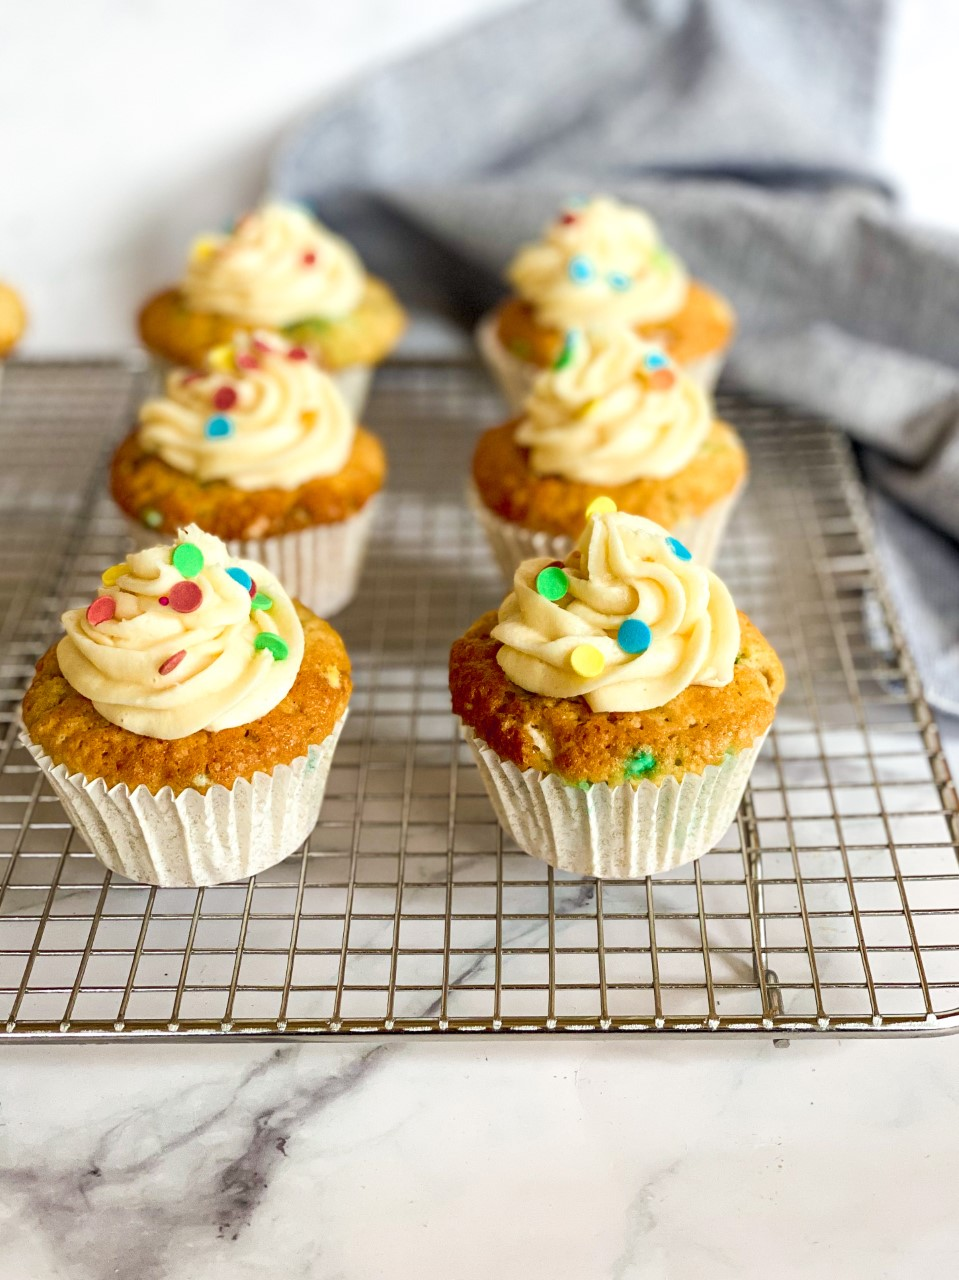 Confetti muffins met frosting